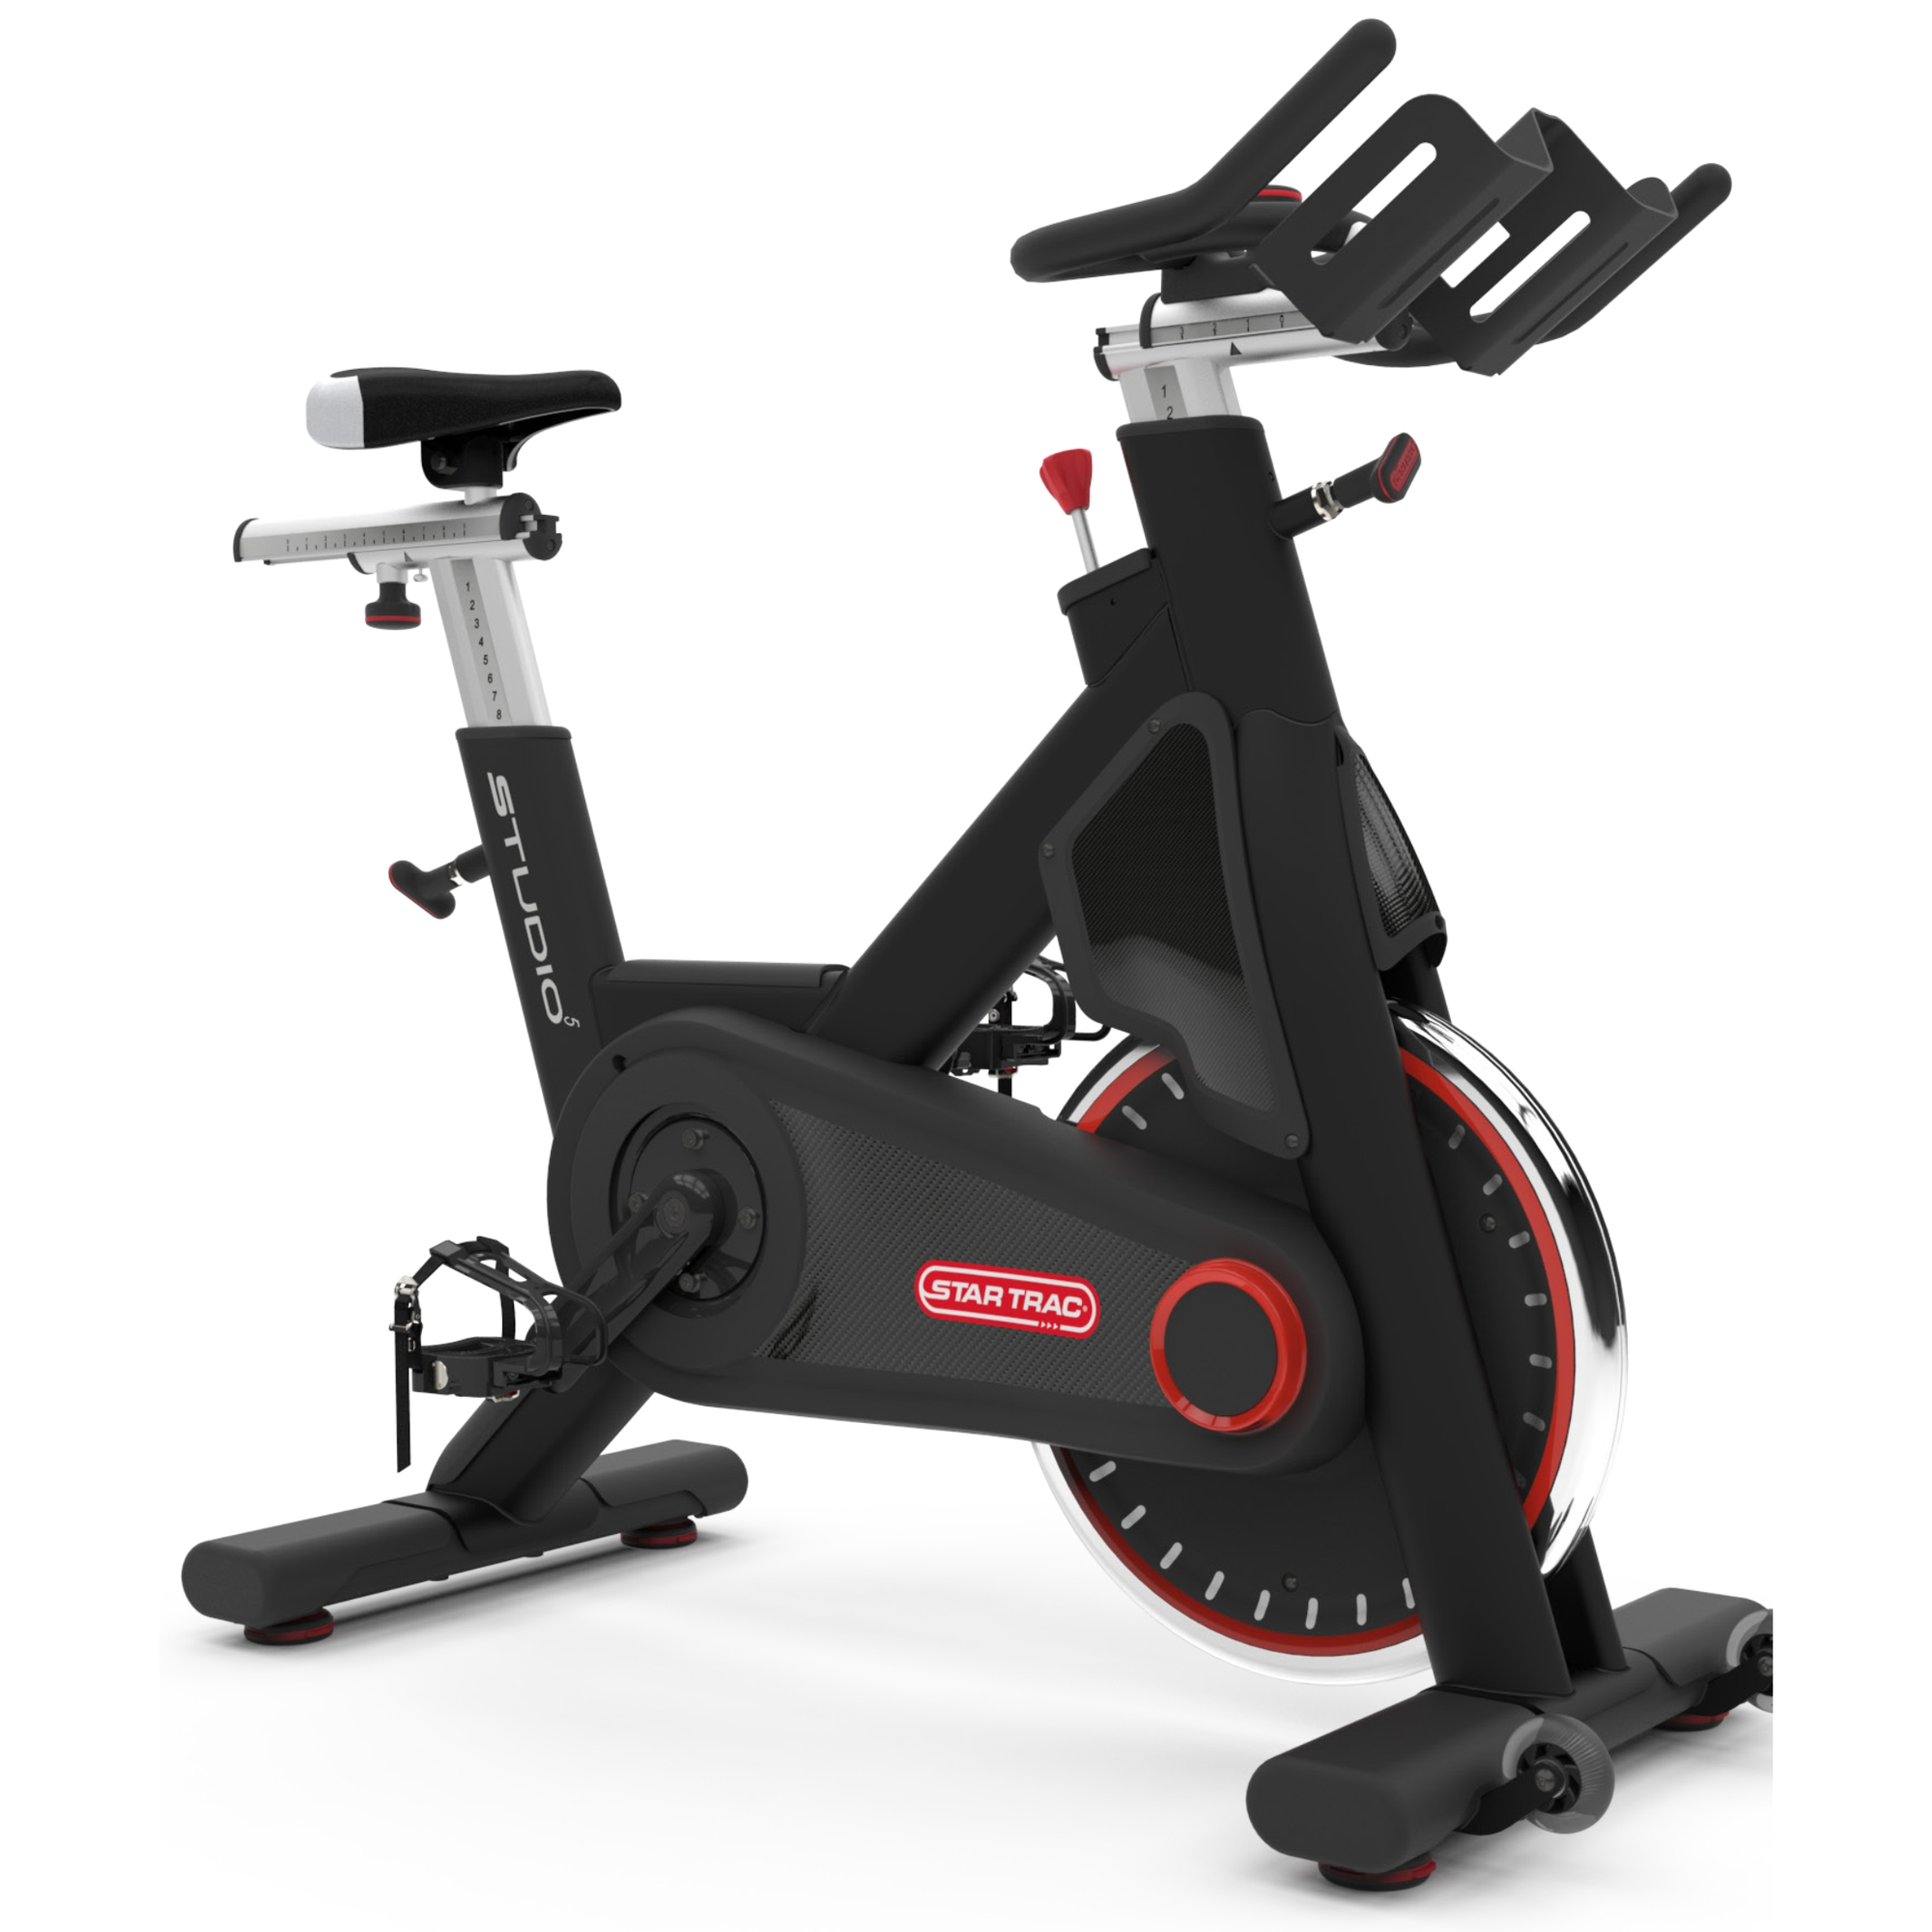 Star Trac Studio 5 Indoor Cycle Gym Equipment South